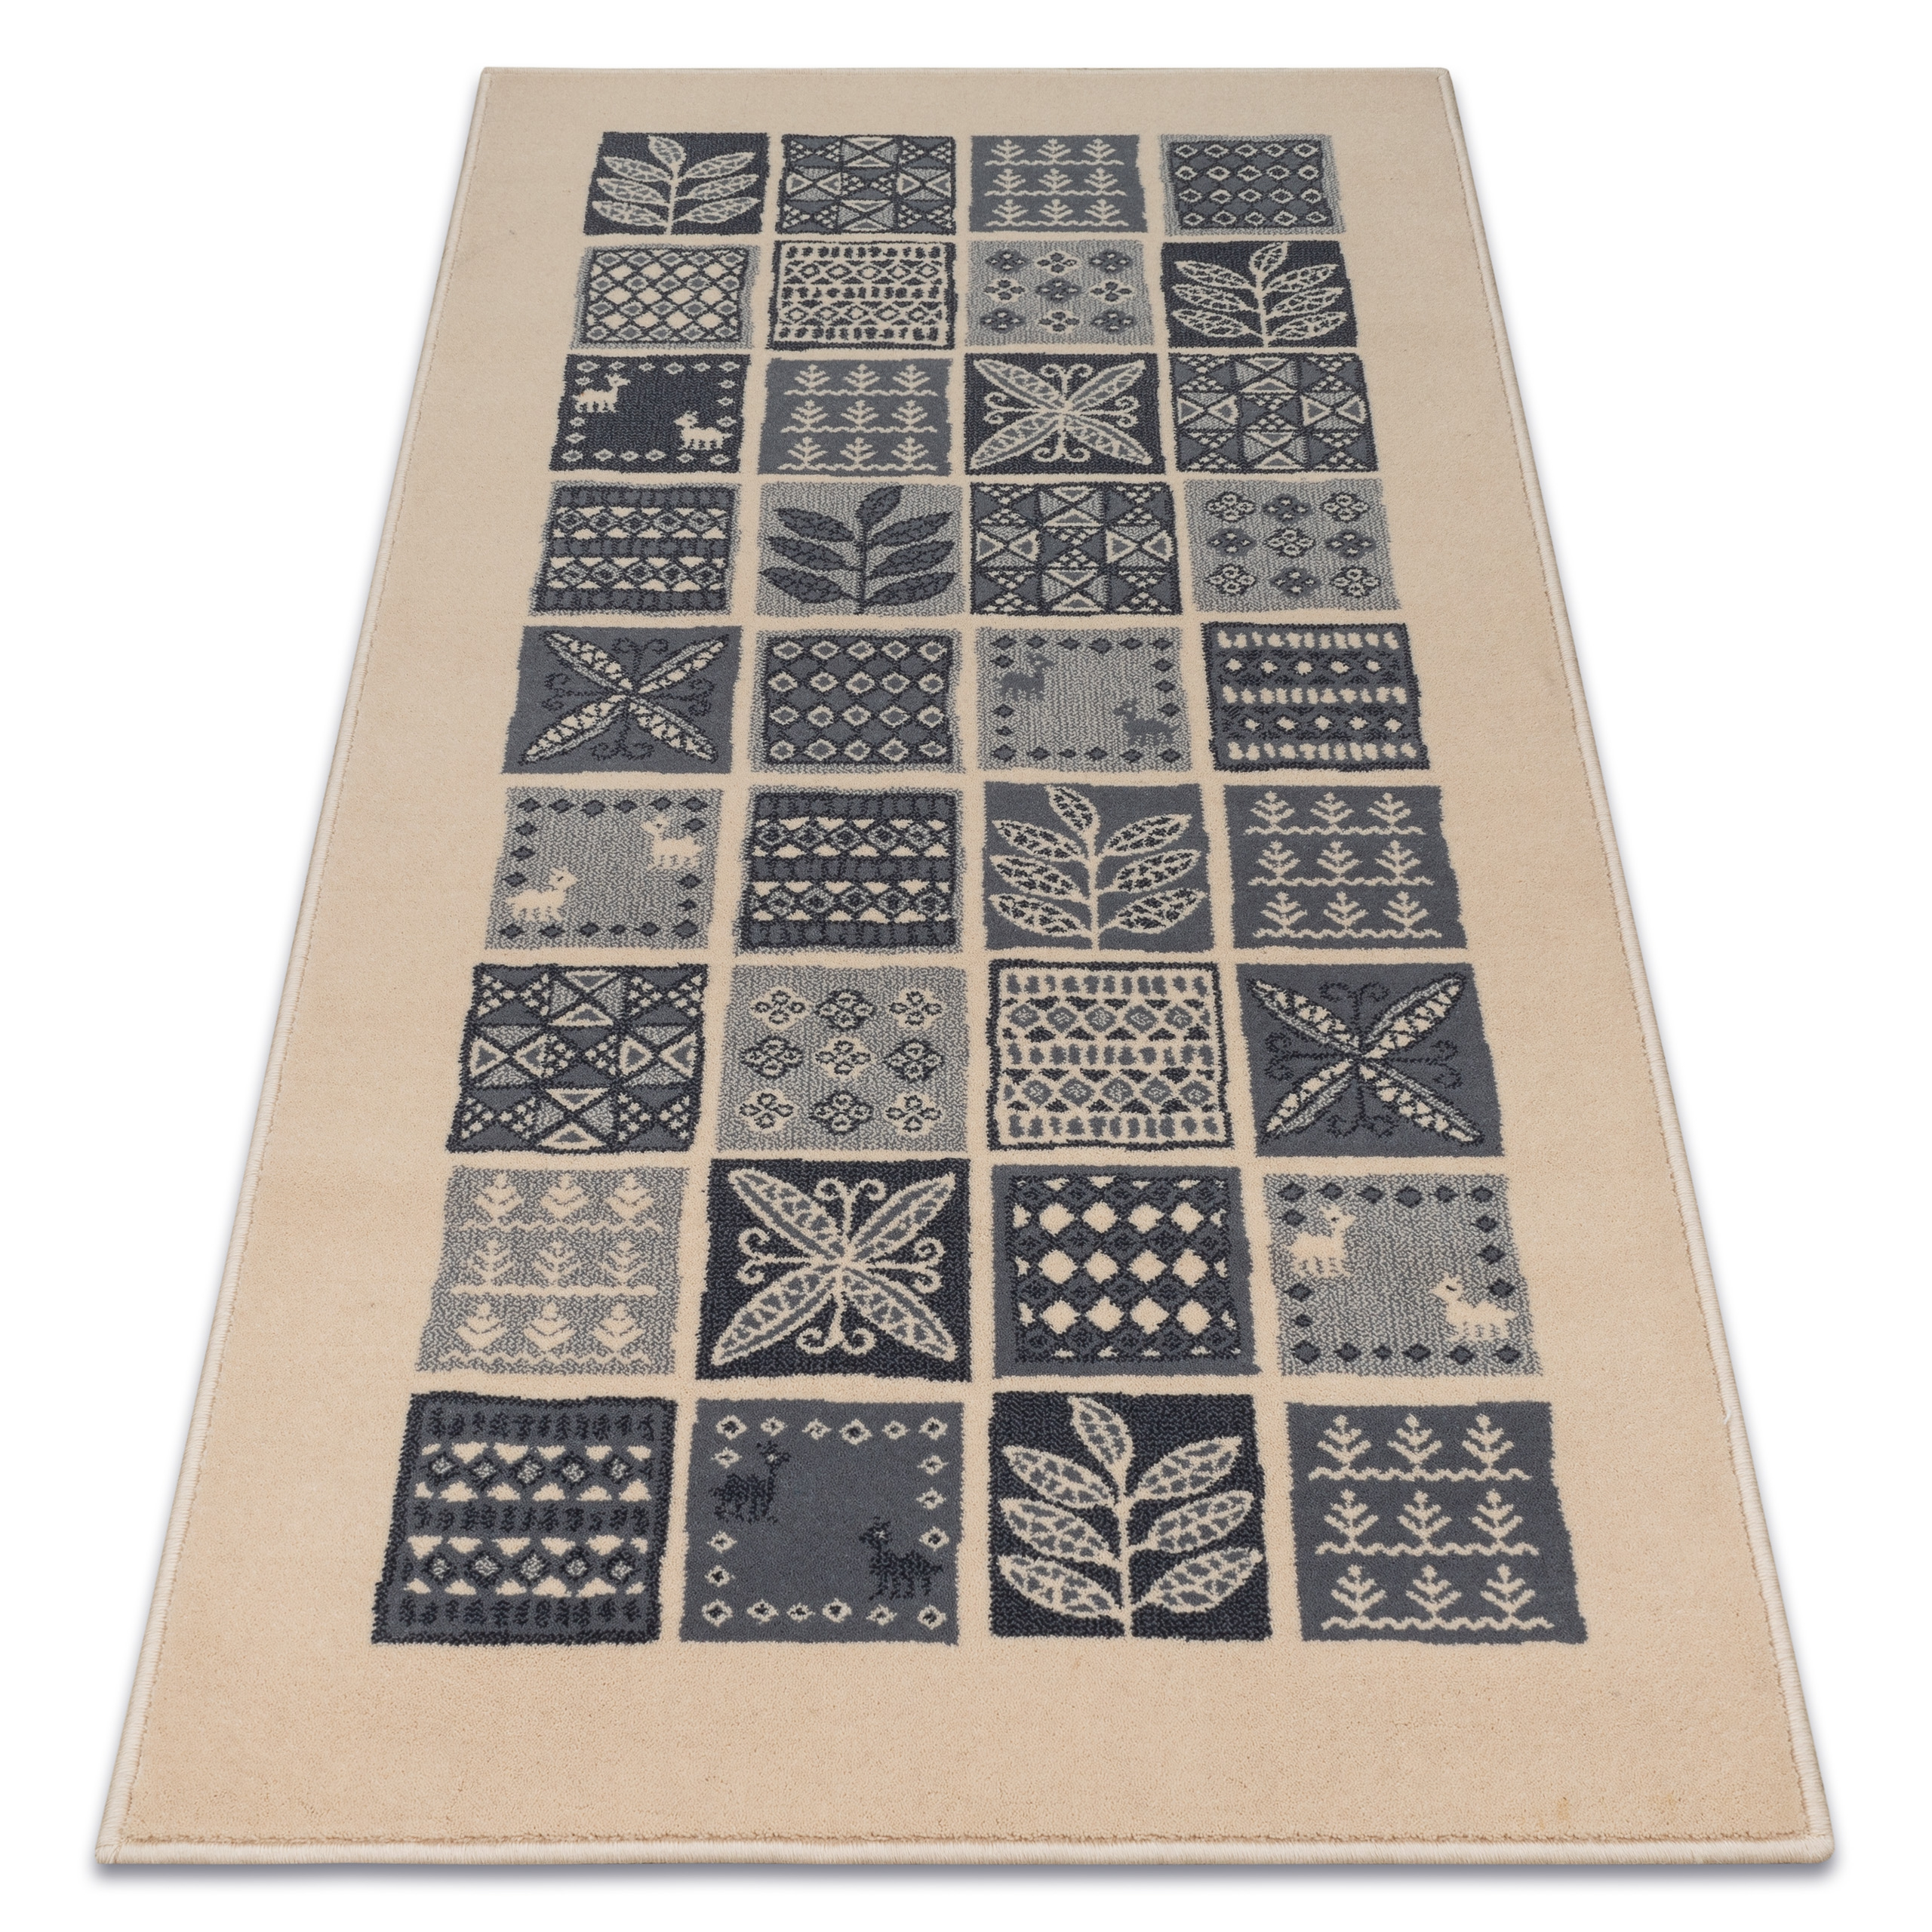 Details About Very Thick And Densely Woven Wool Rugs Primiera Beige Best Quality Carpets